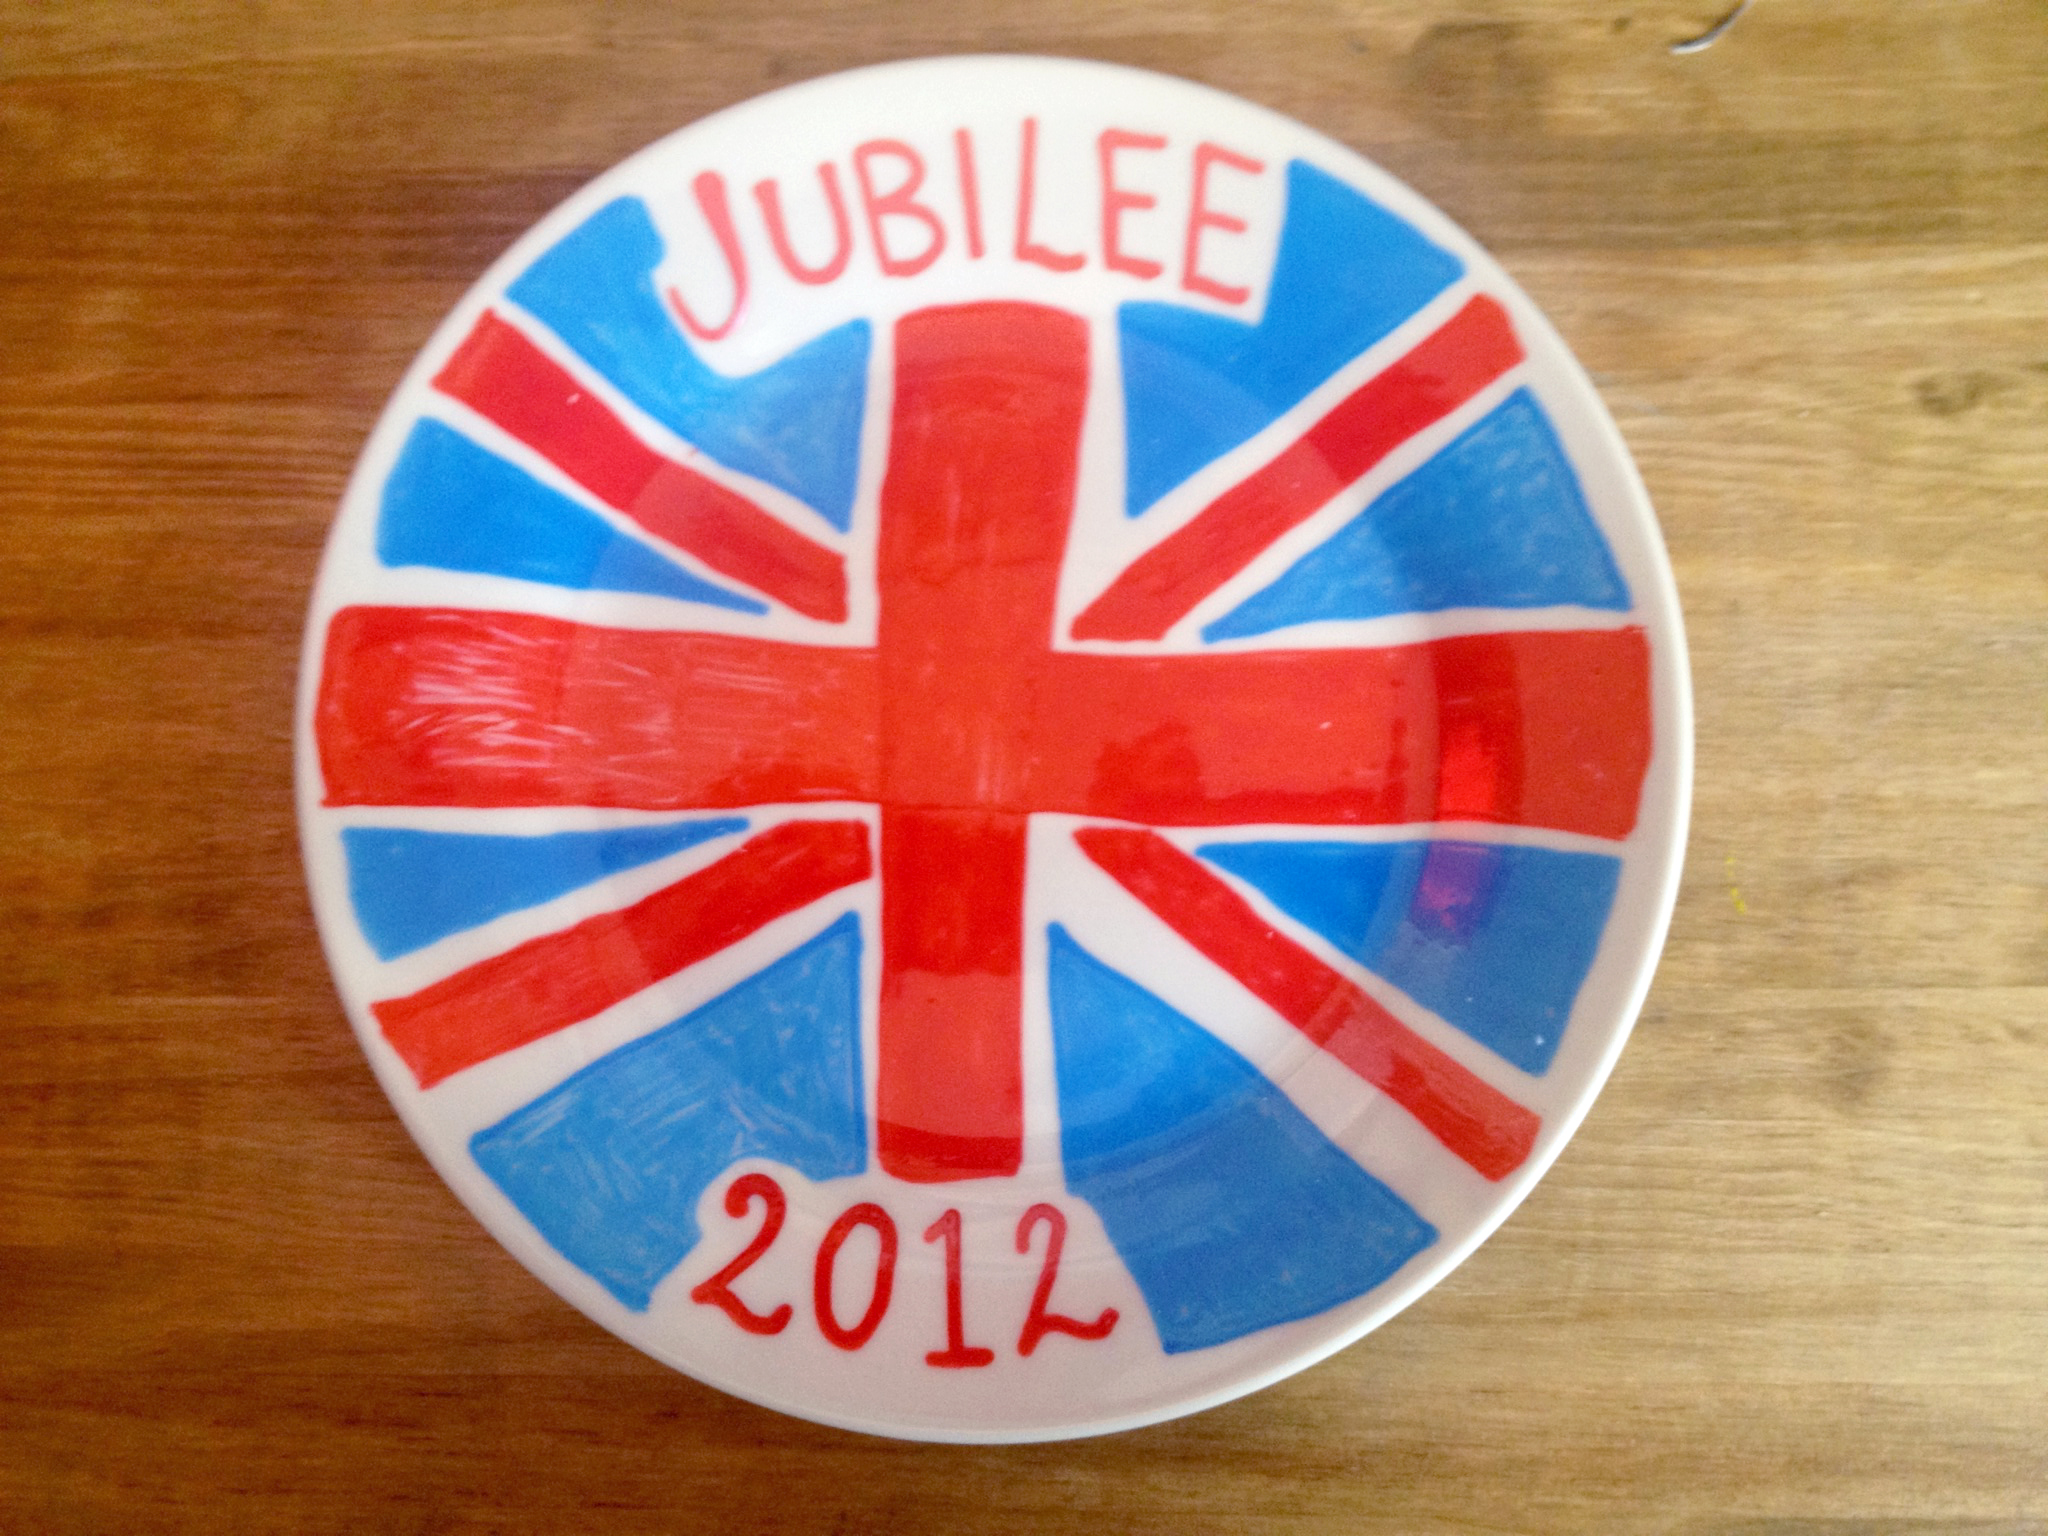 June Sees: Jubilee Plate Design